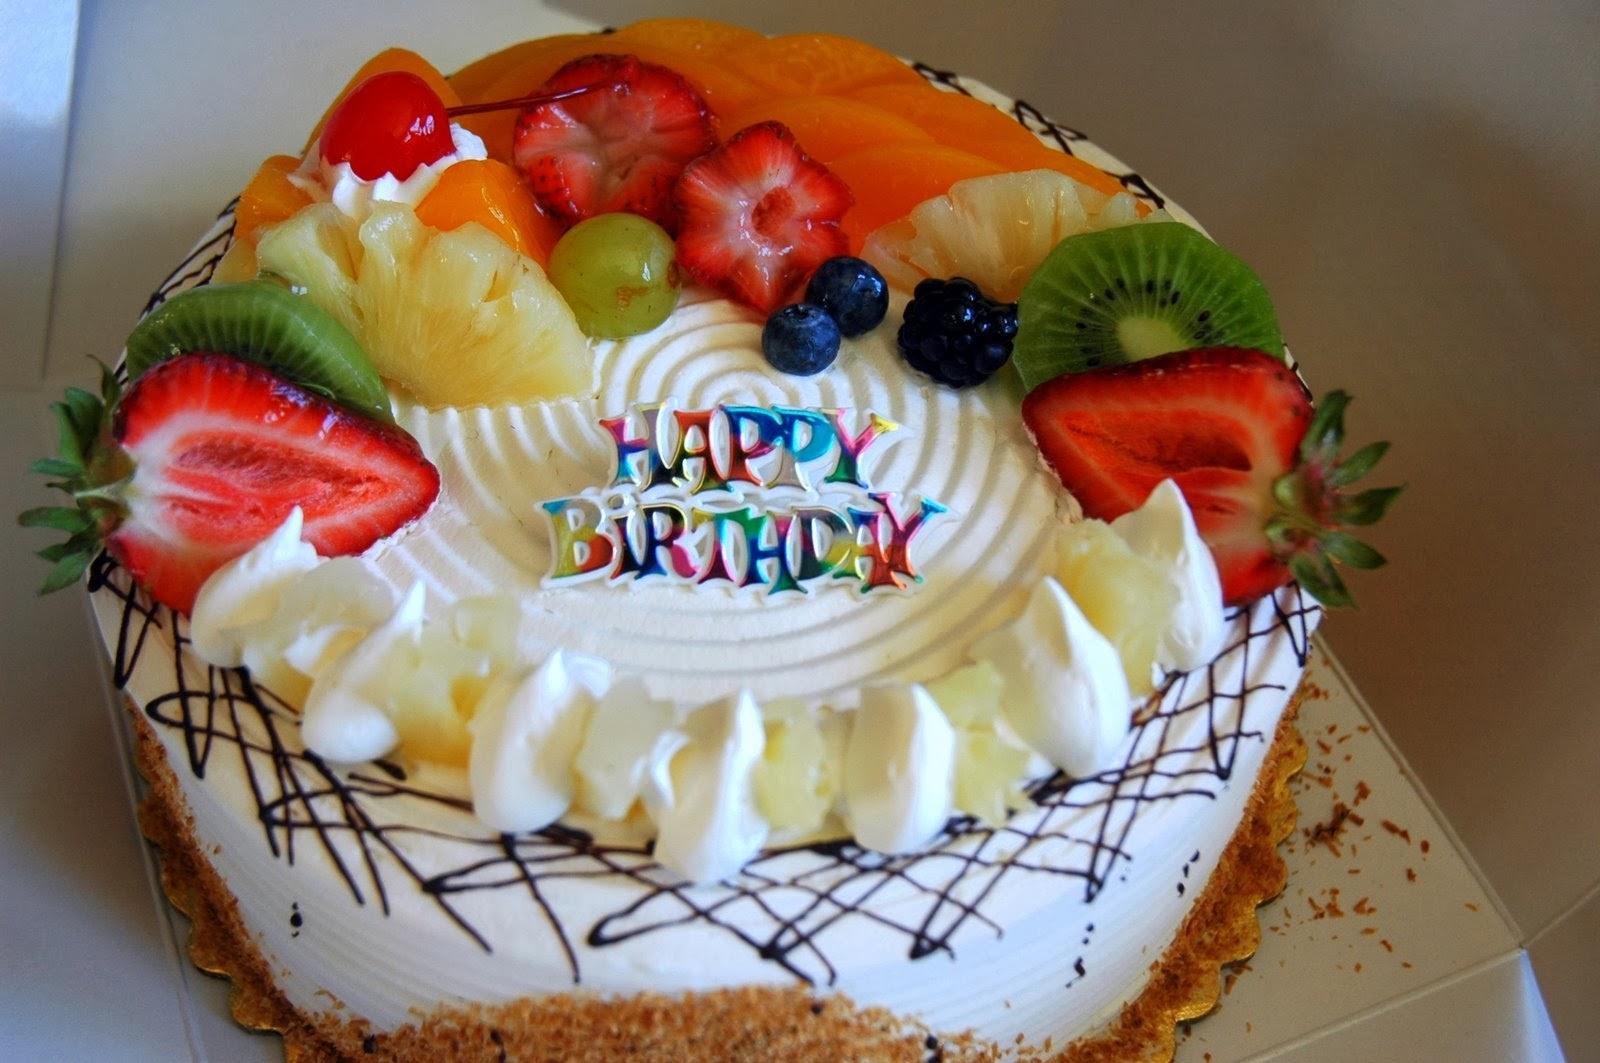 Birthday Cake Images Gallery : All new wallpaper : Happy birthday cake wallpaper